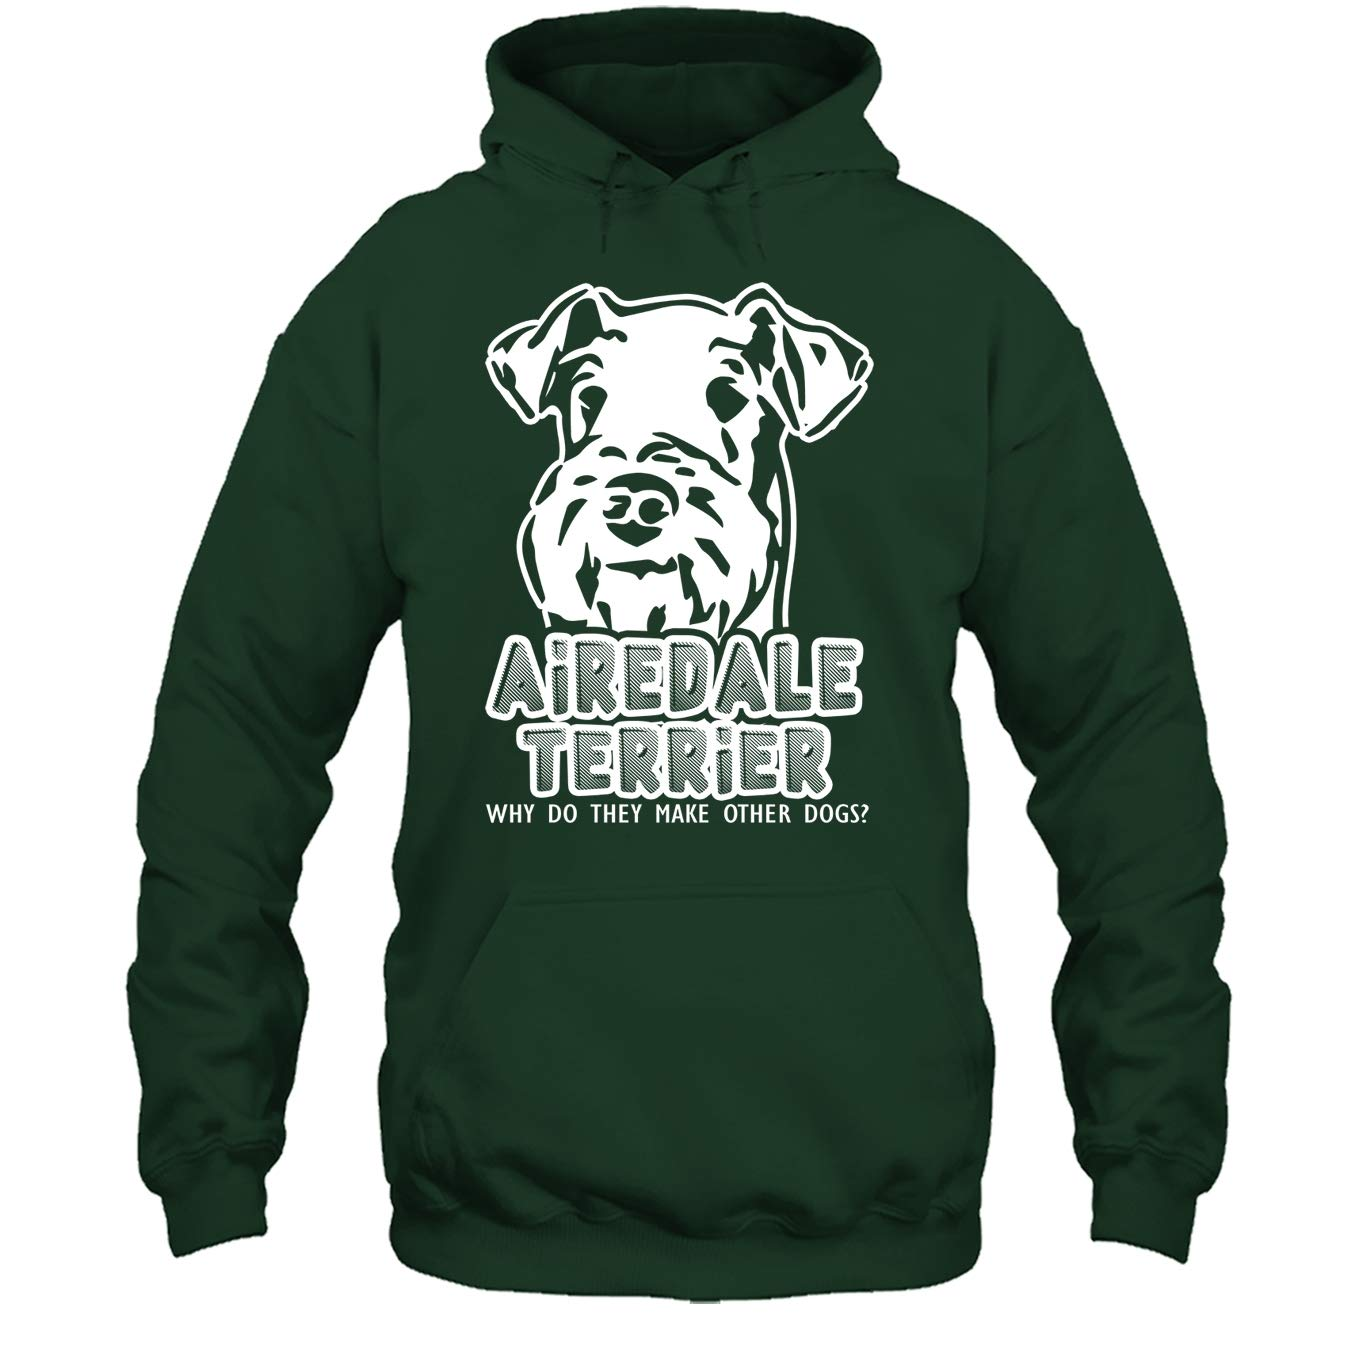 Love Airedale Terriers Tee Shirt Airedale Terrier T Shirt